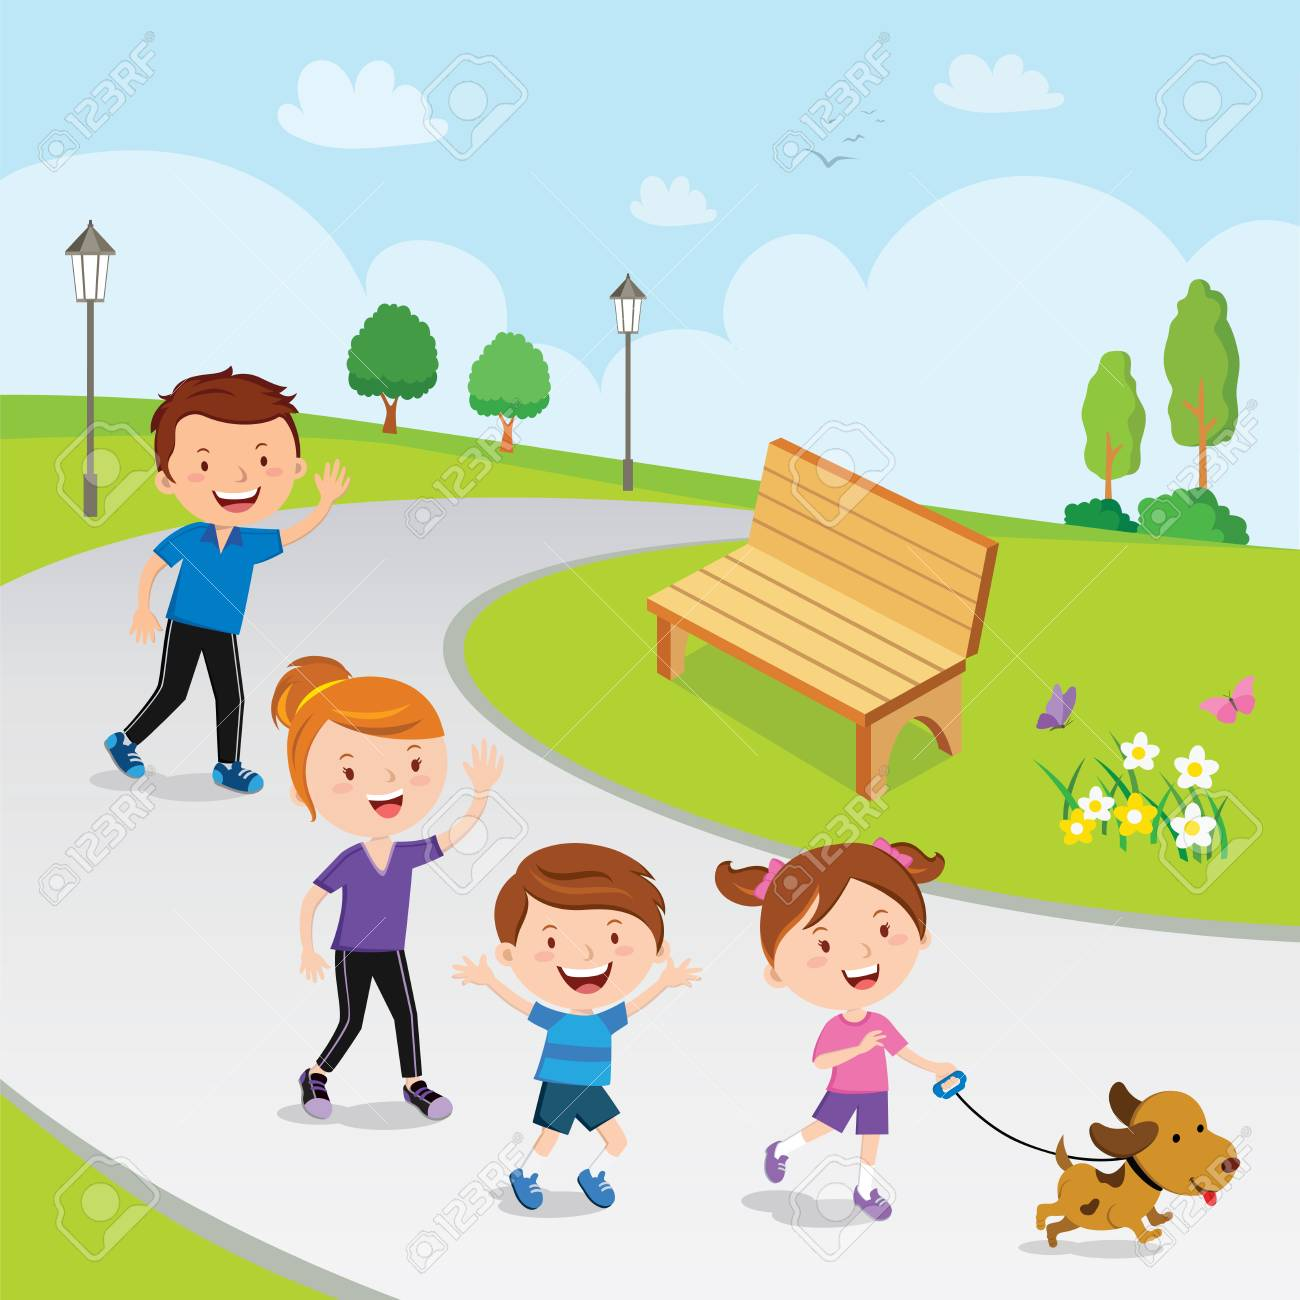 Family walking in the park.